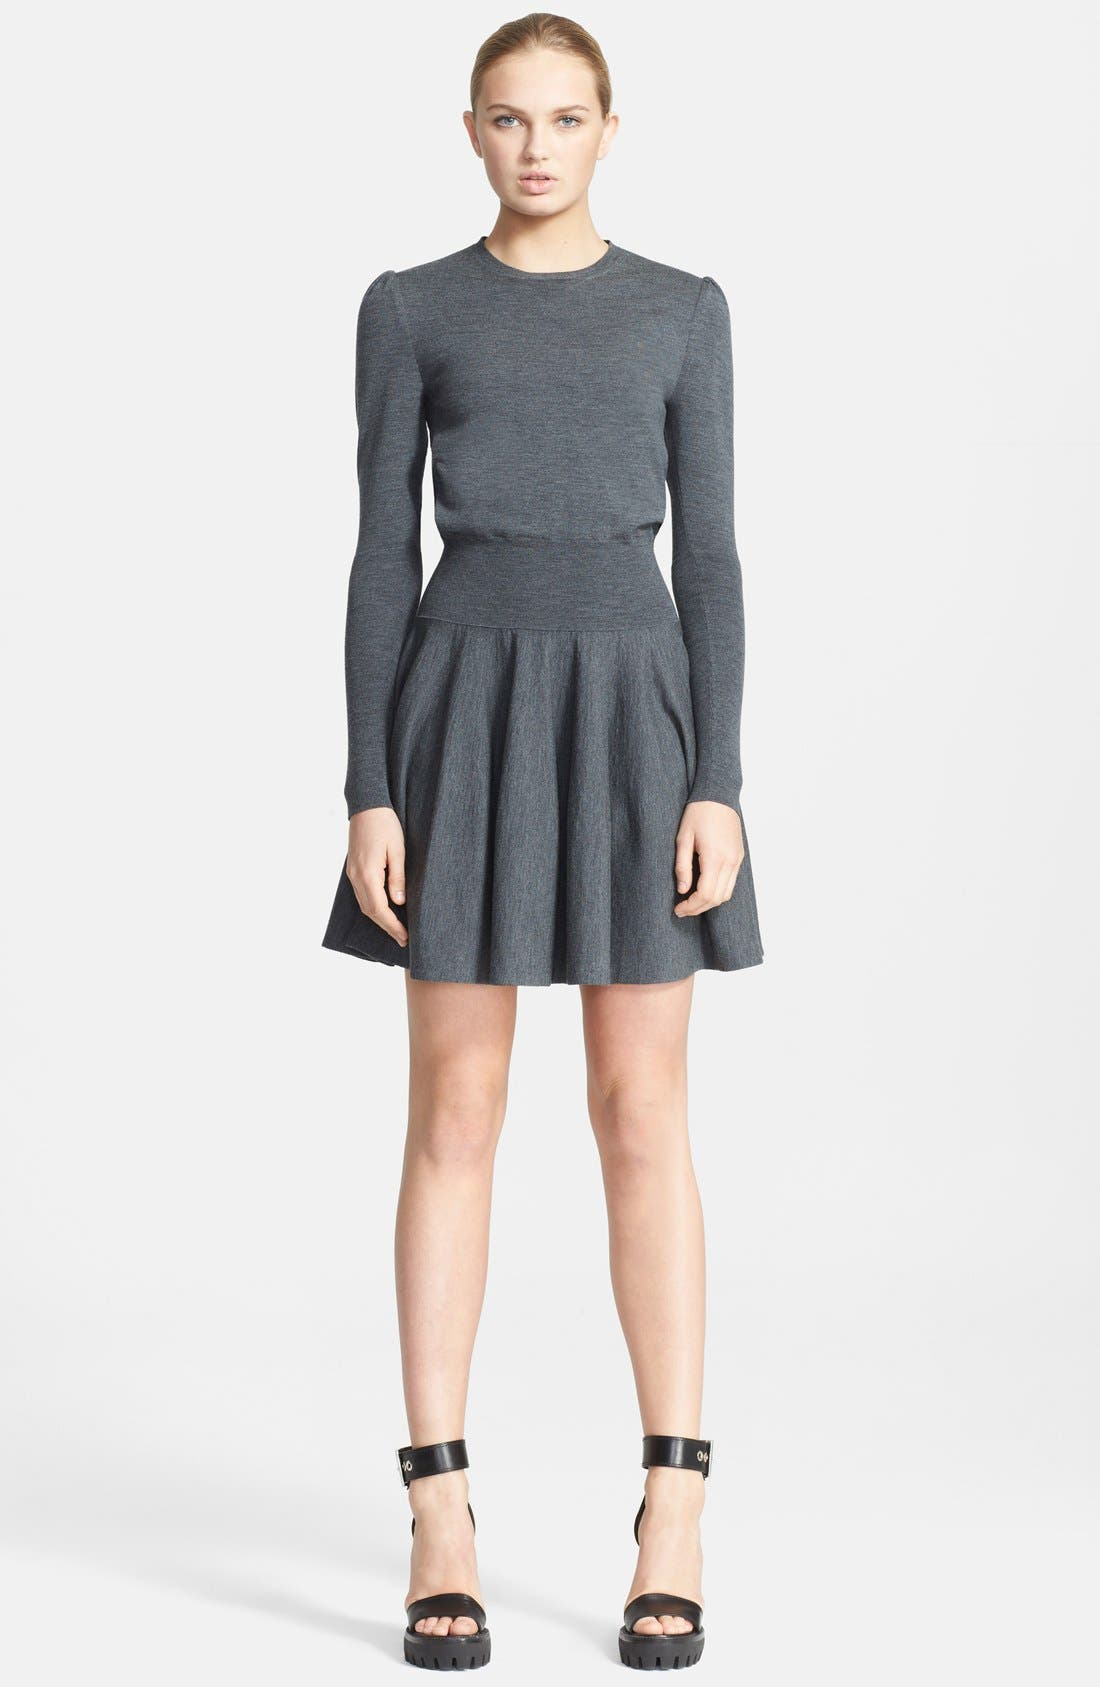 Main Image - Alexander McQueen Fit & Flare Knit Dress